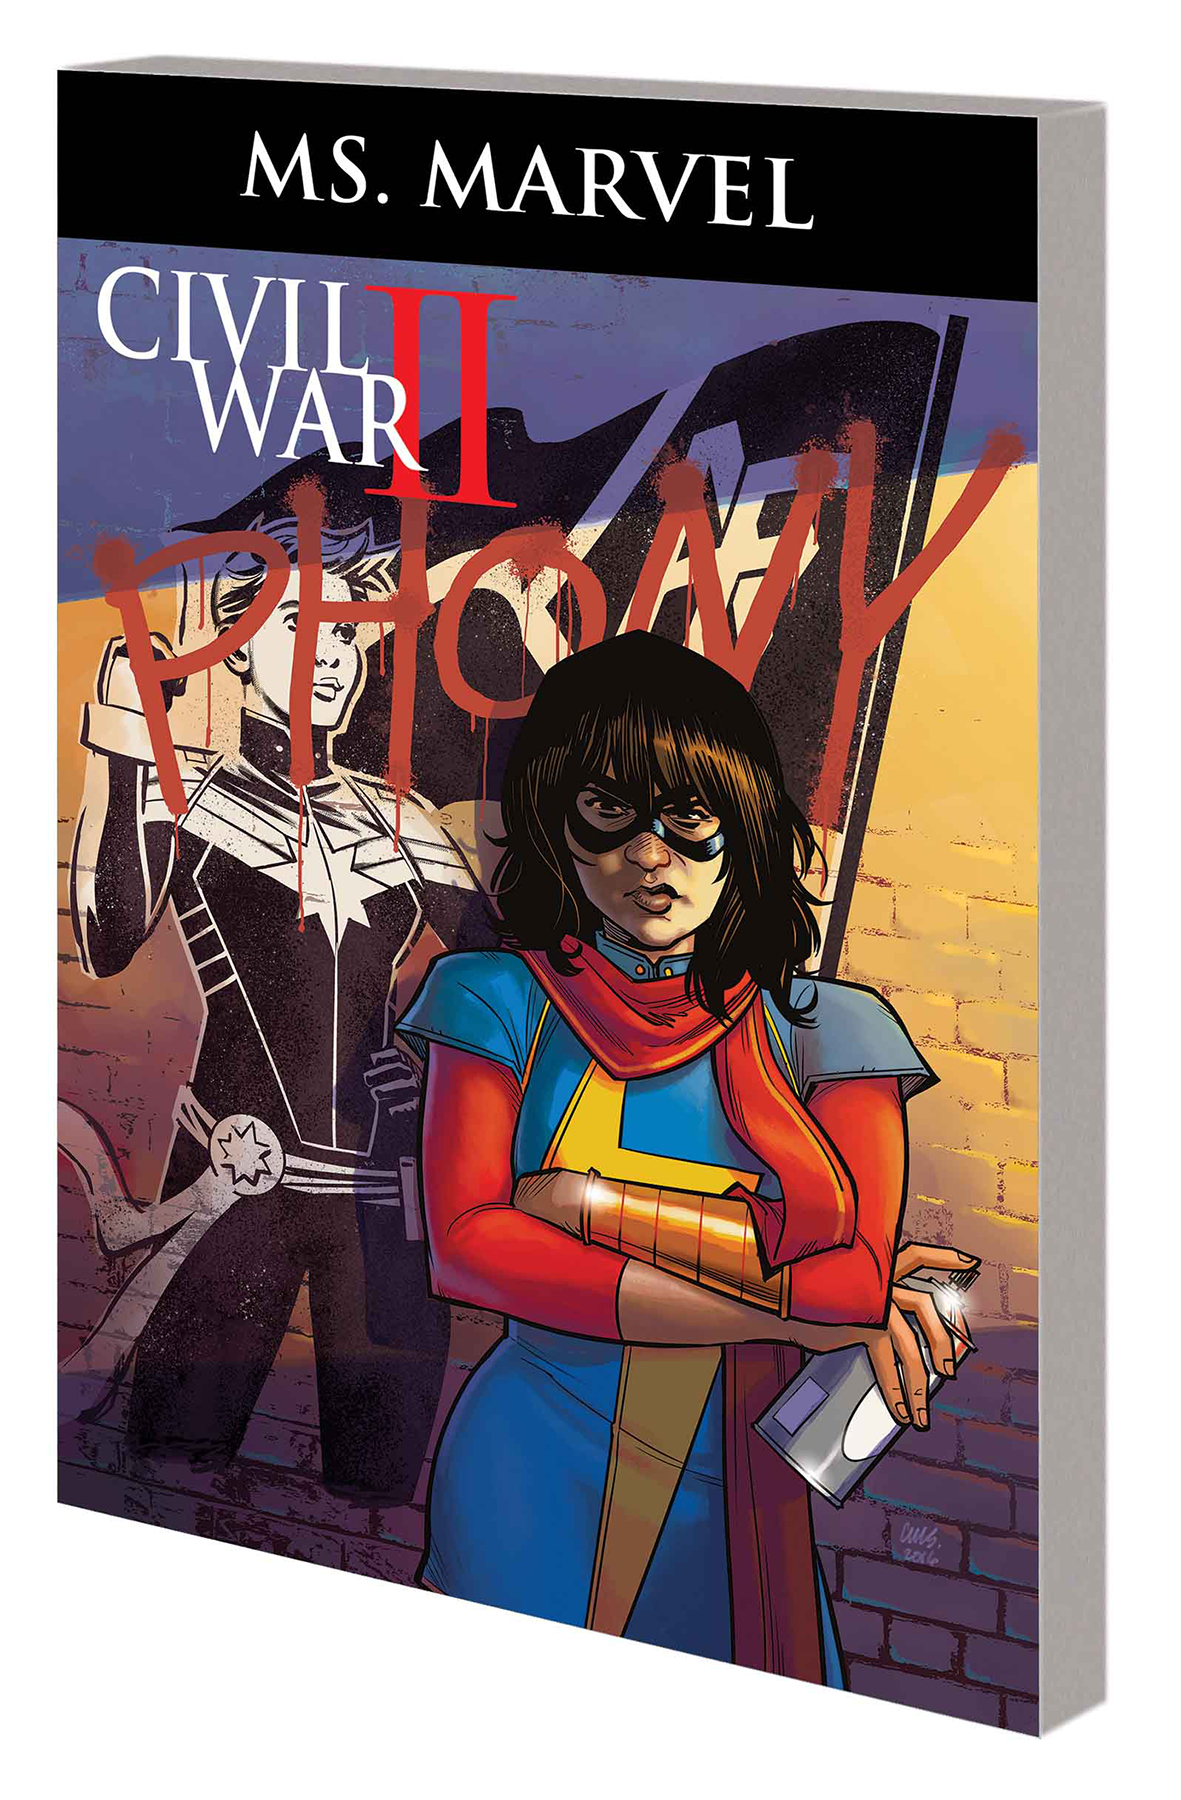 MS MARVEL TP VOL 06 CIVIL WAR II